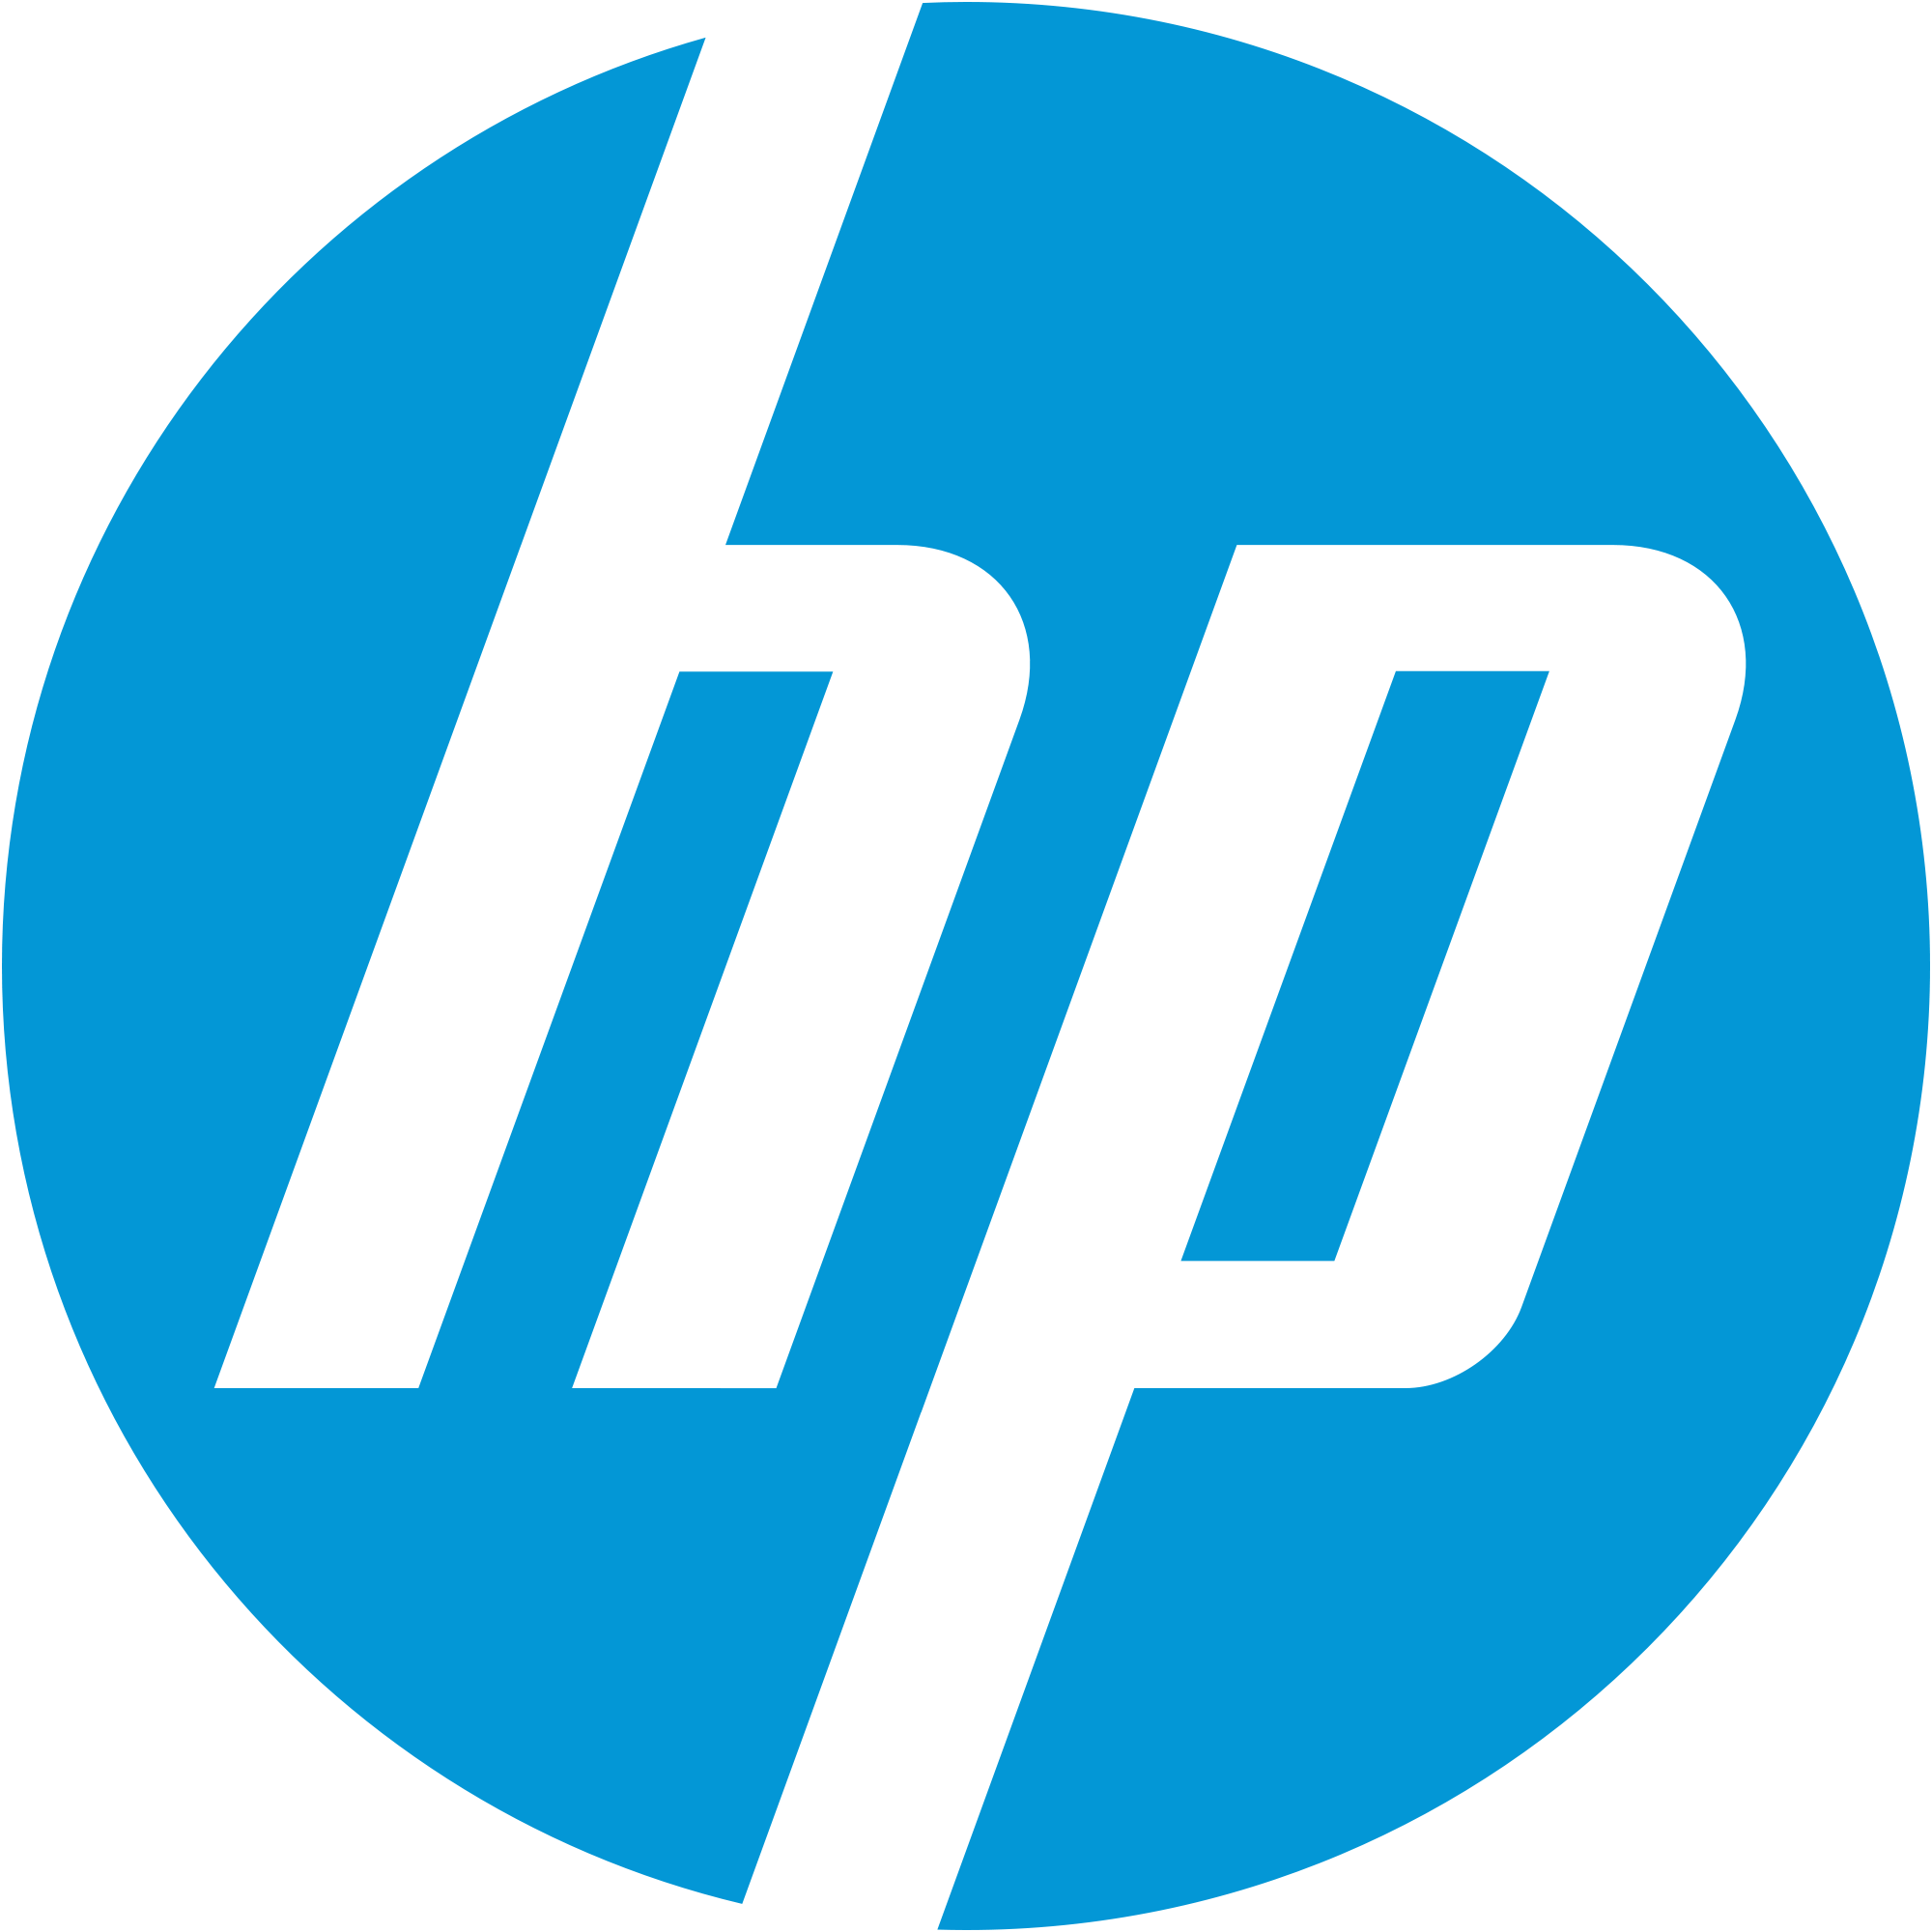 . PlusPng.com Hp logo transparent background The result is that our clients benefit  from strong, coordinated solutions with partners we know PlusPng.com  - Hp PNG